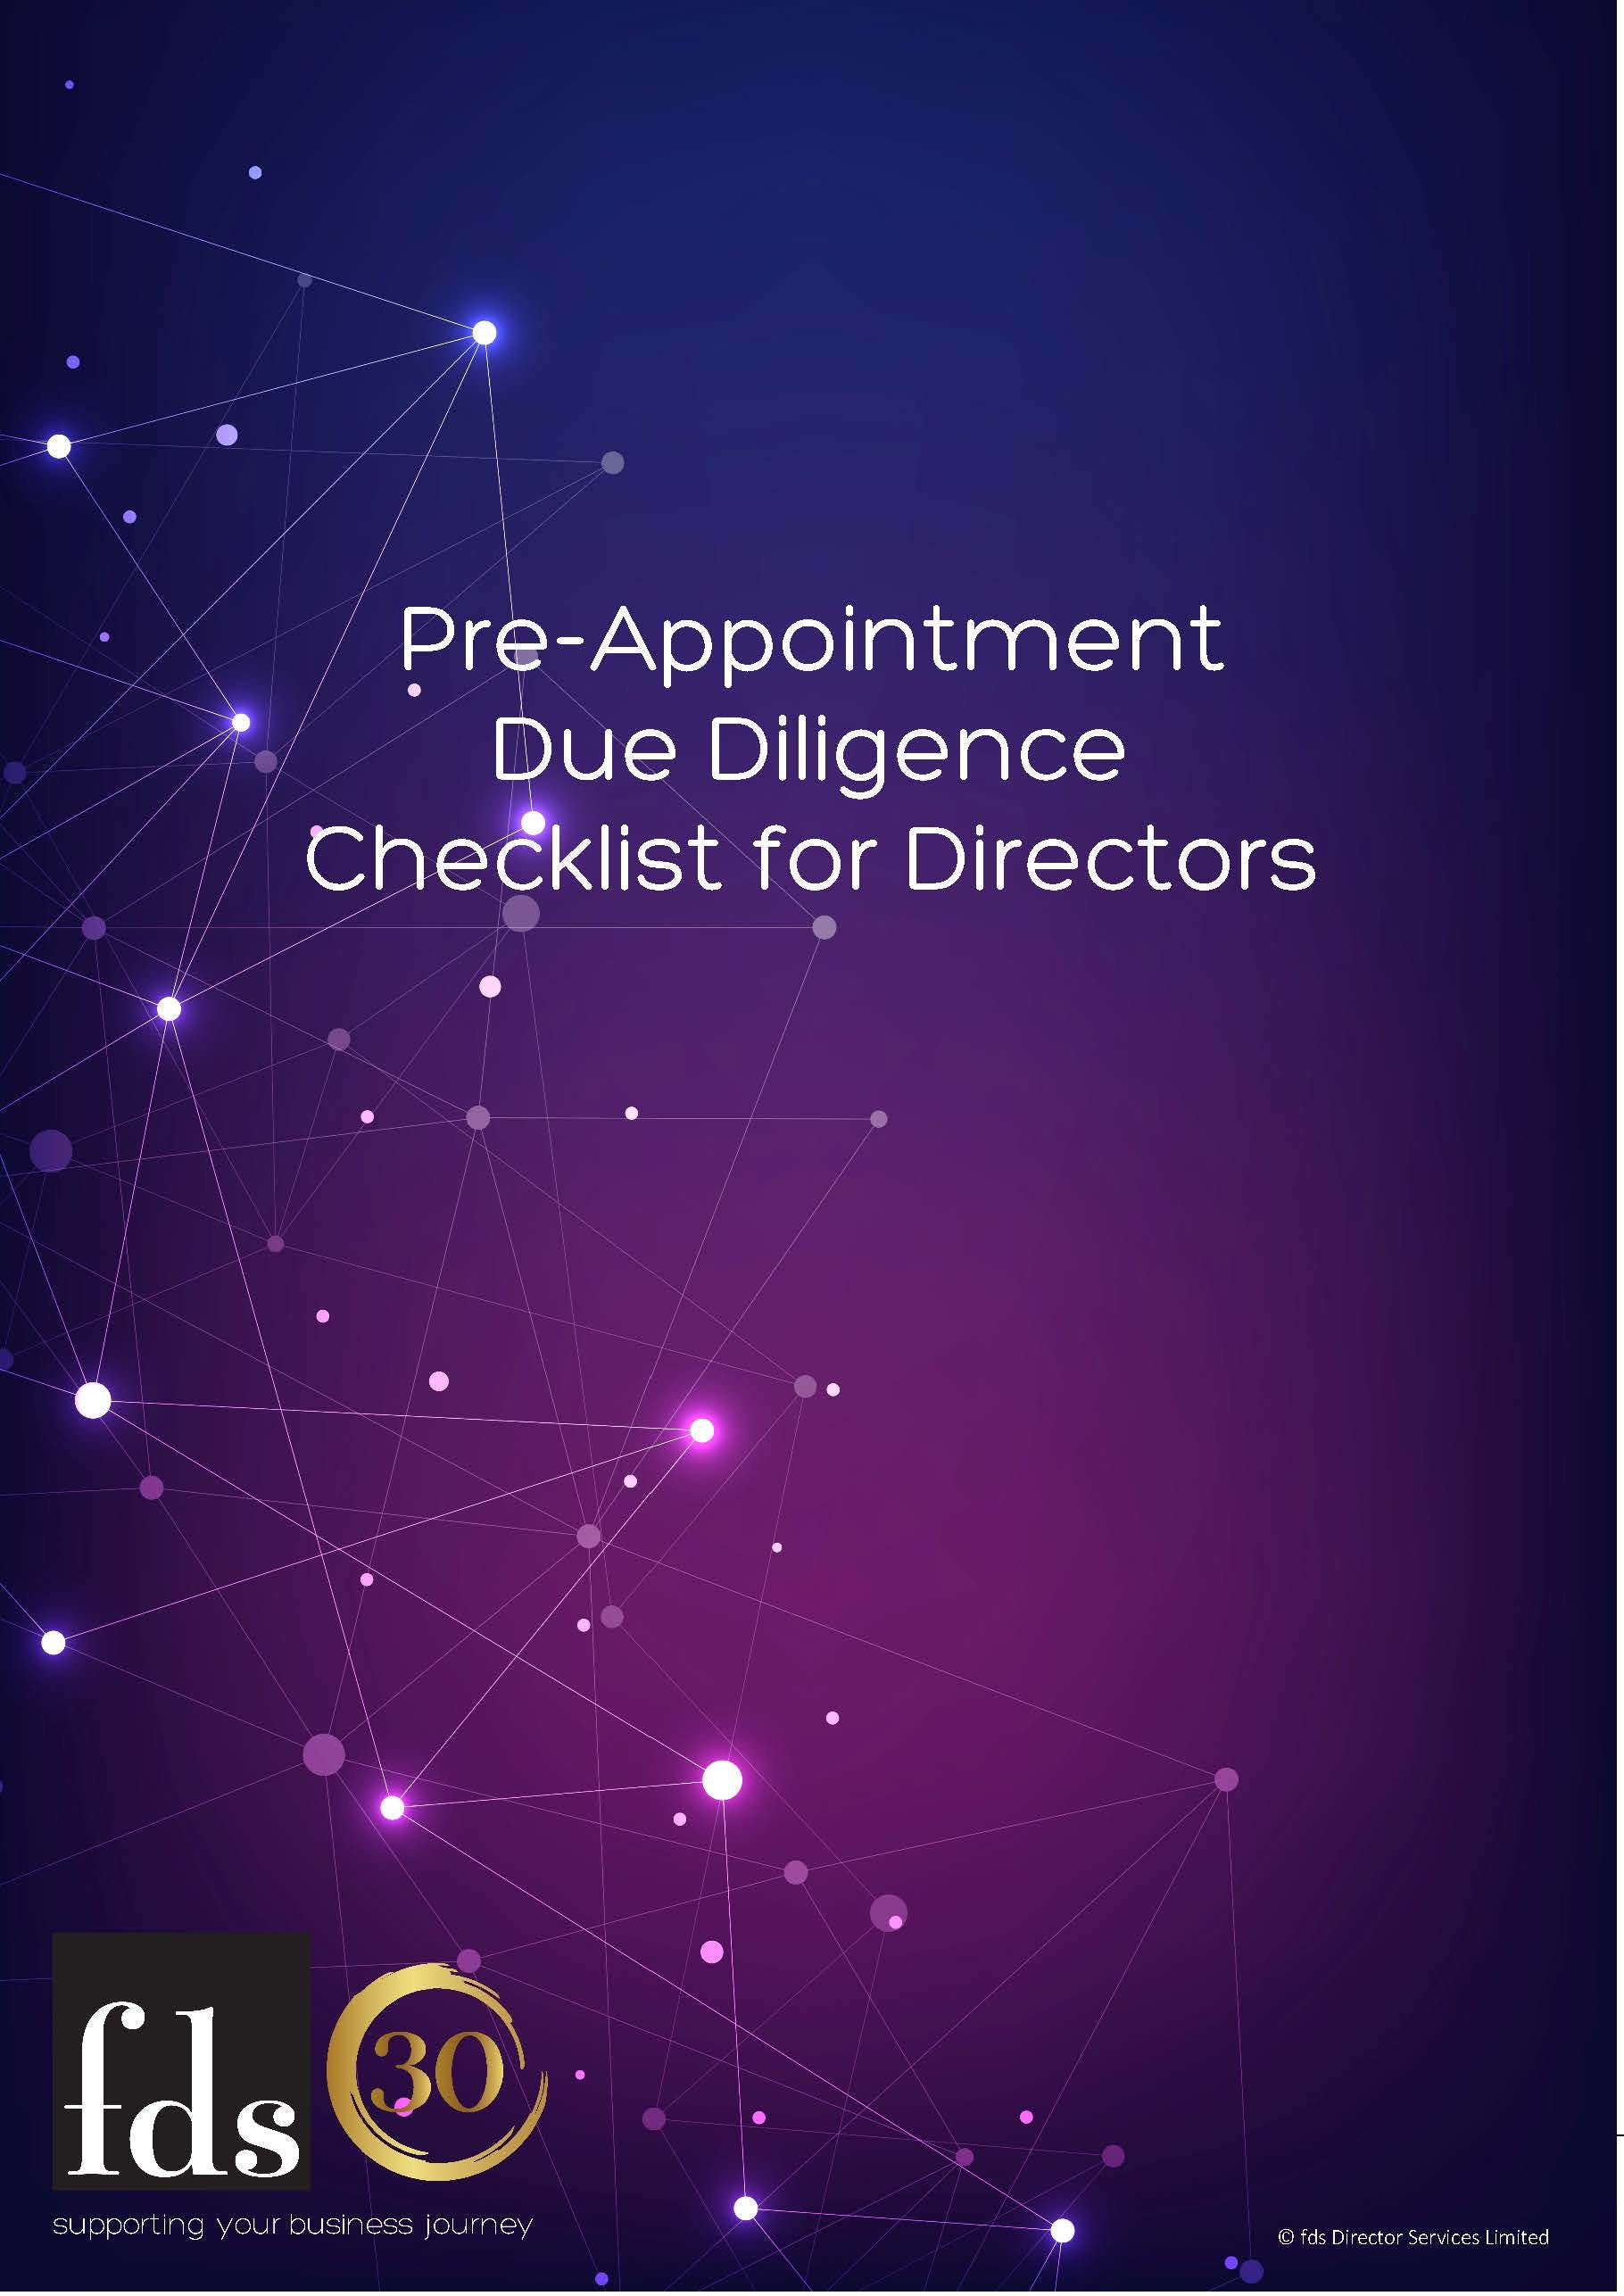 fds Free Resource - Pre-Appointment Due Diligence Checklist for Directors